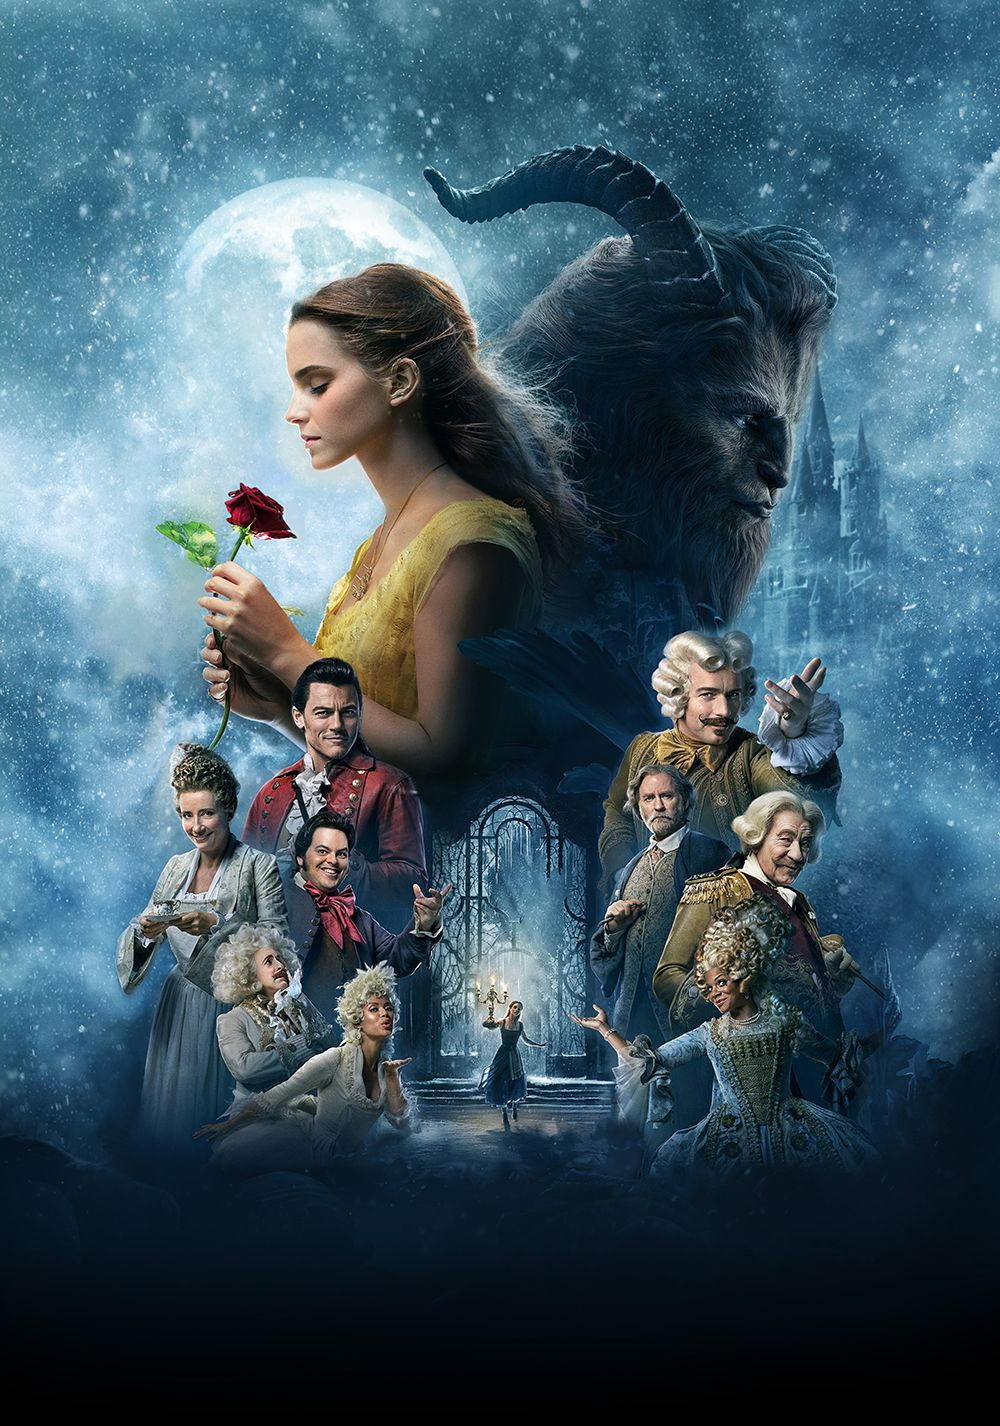 Beauty And The Beast Poster Beauty And The Beast Movie The